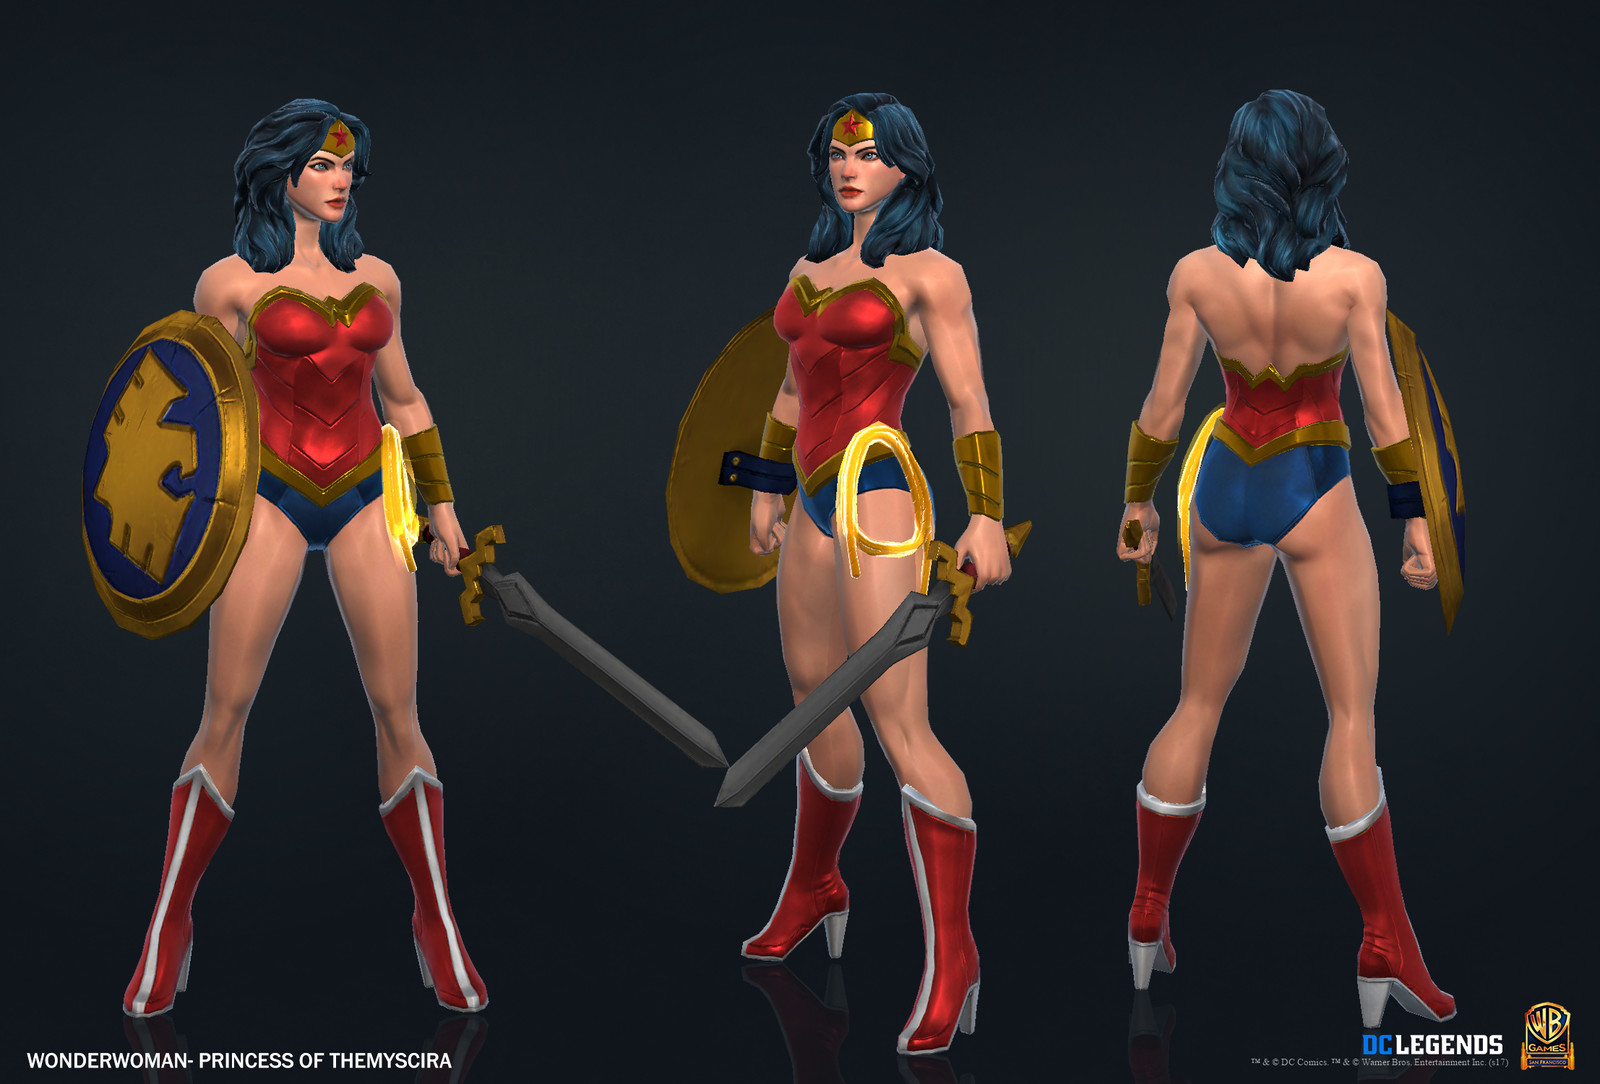 Wonder Woman Heroic High Poly, Low Poly Textures/Material work done by me. Sword and Shield created by Rachelle Danielle.